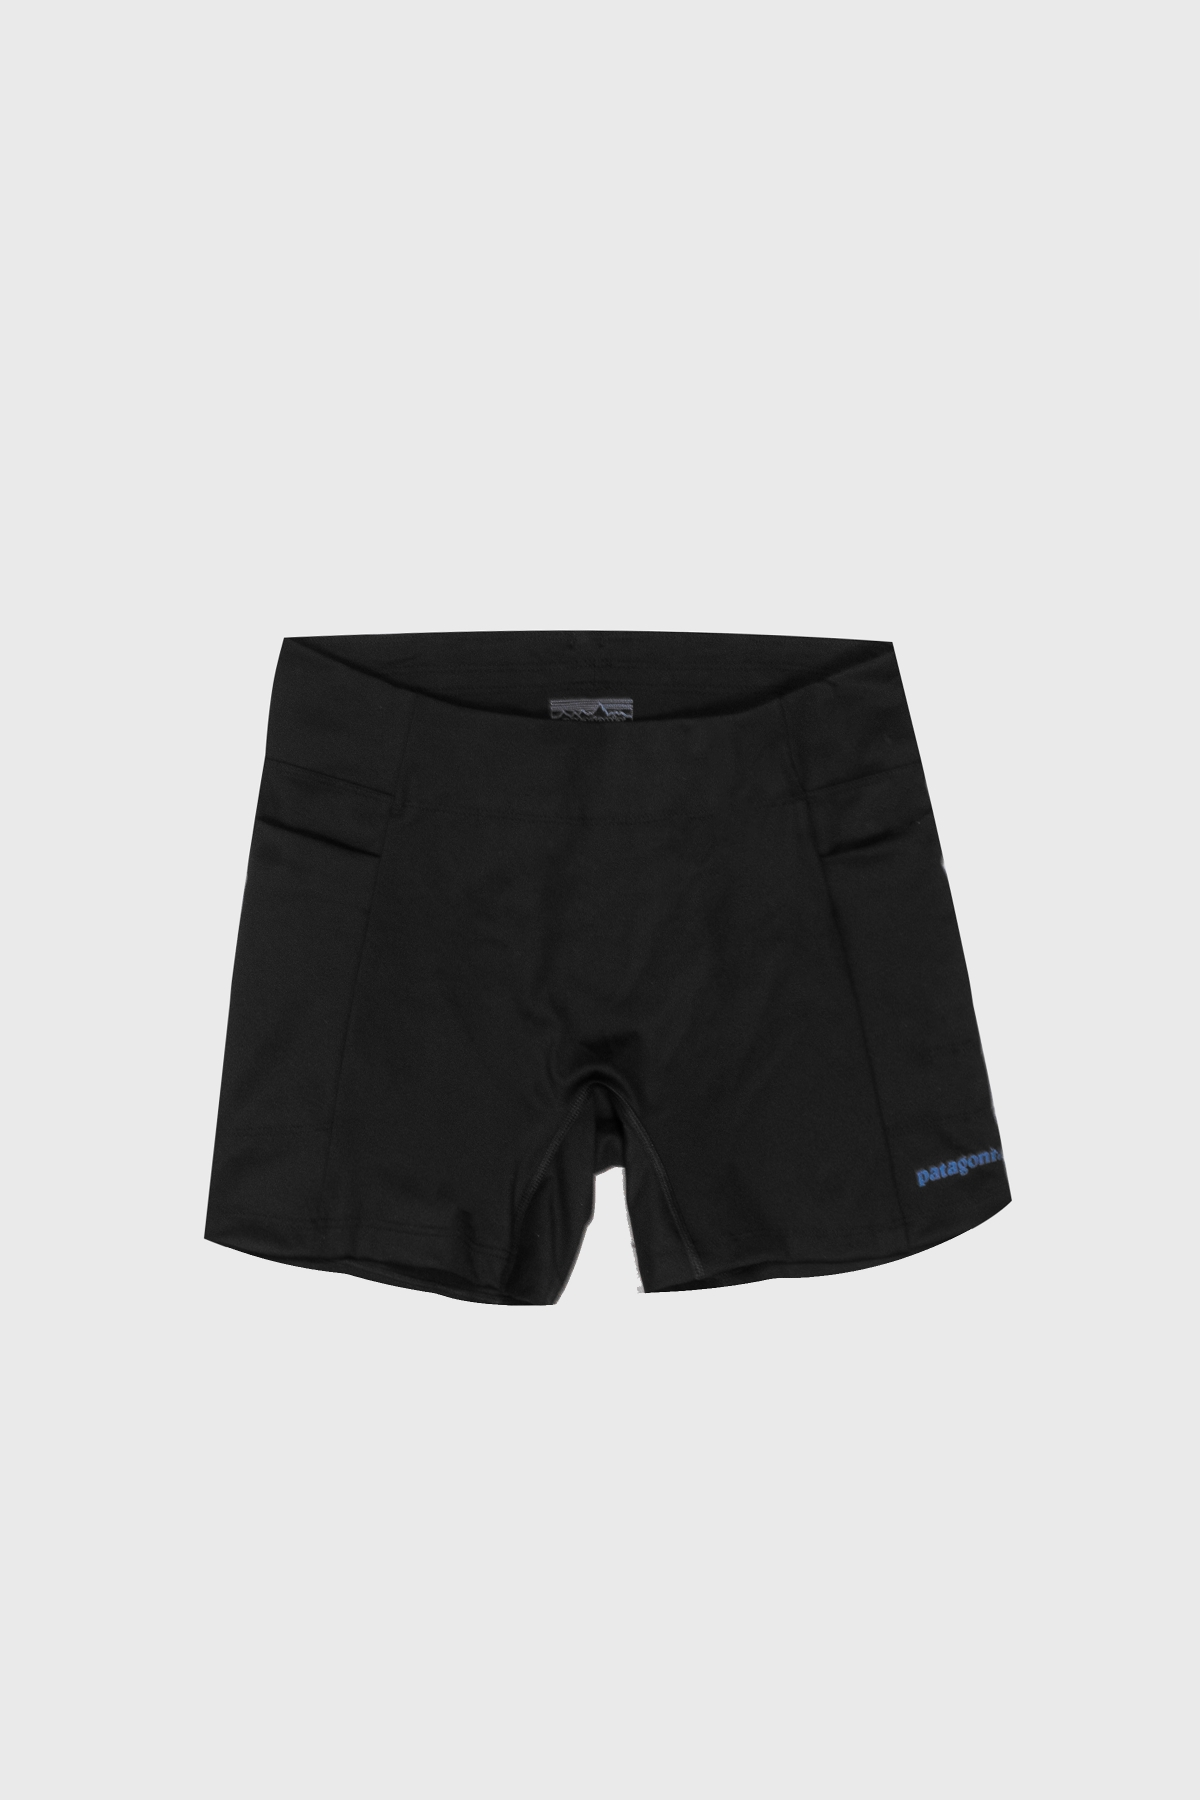 patagonia - Women's Endless Run Shorts 4 1/2